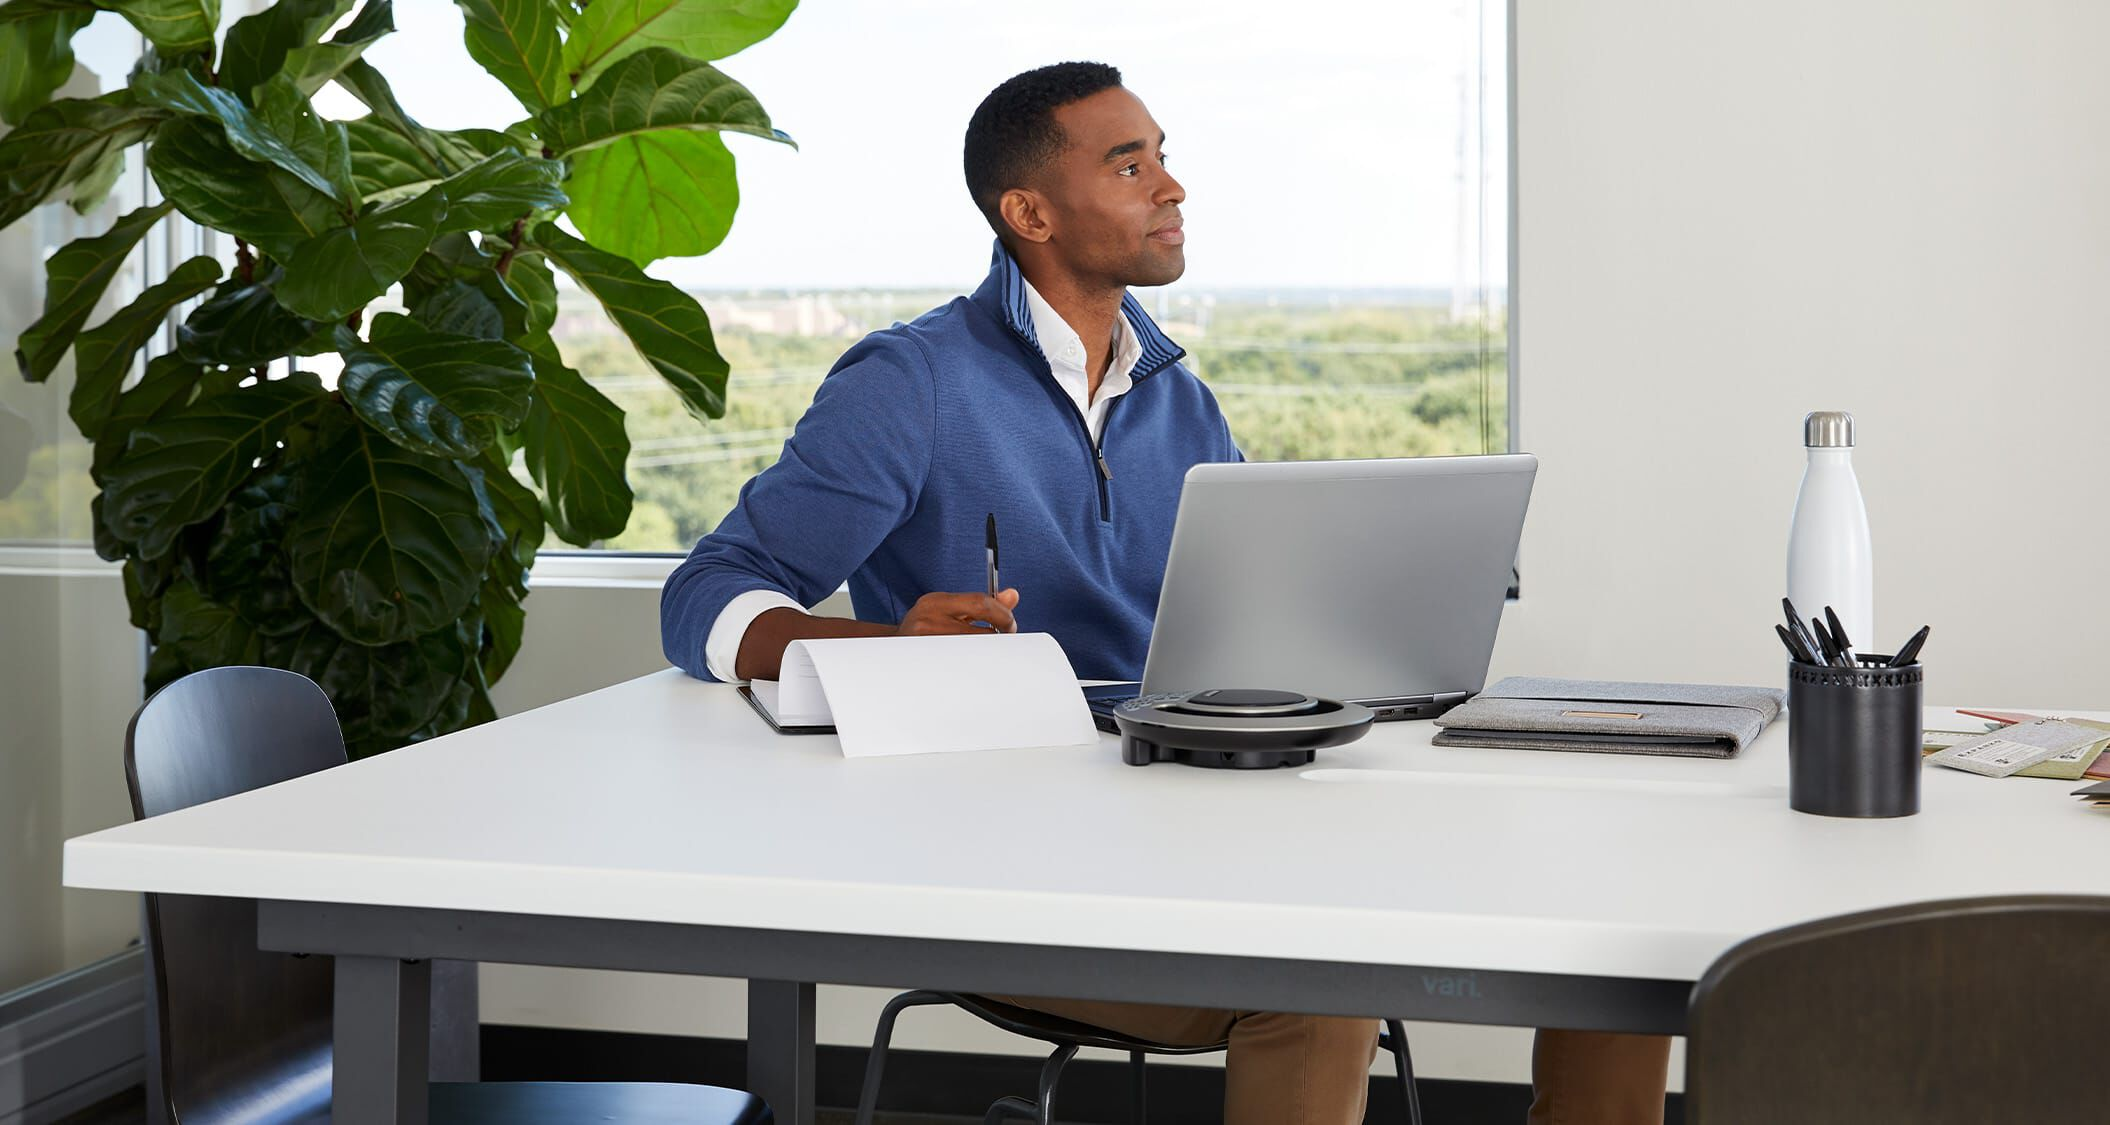 professional seated at vari conference table in conference room setting